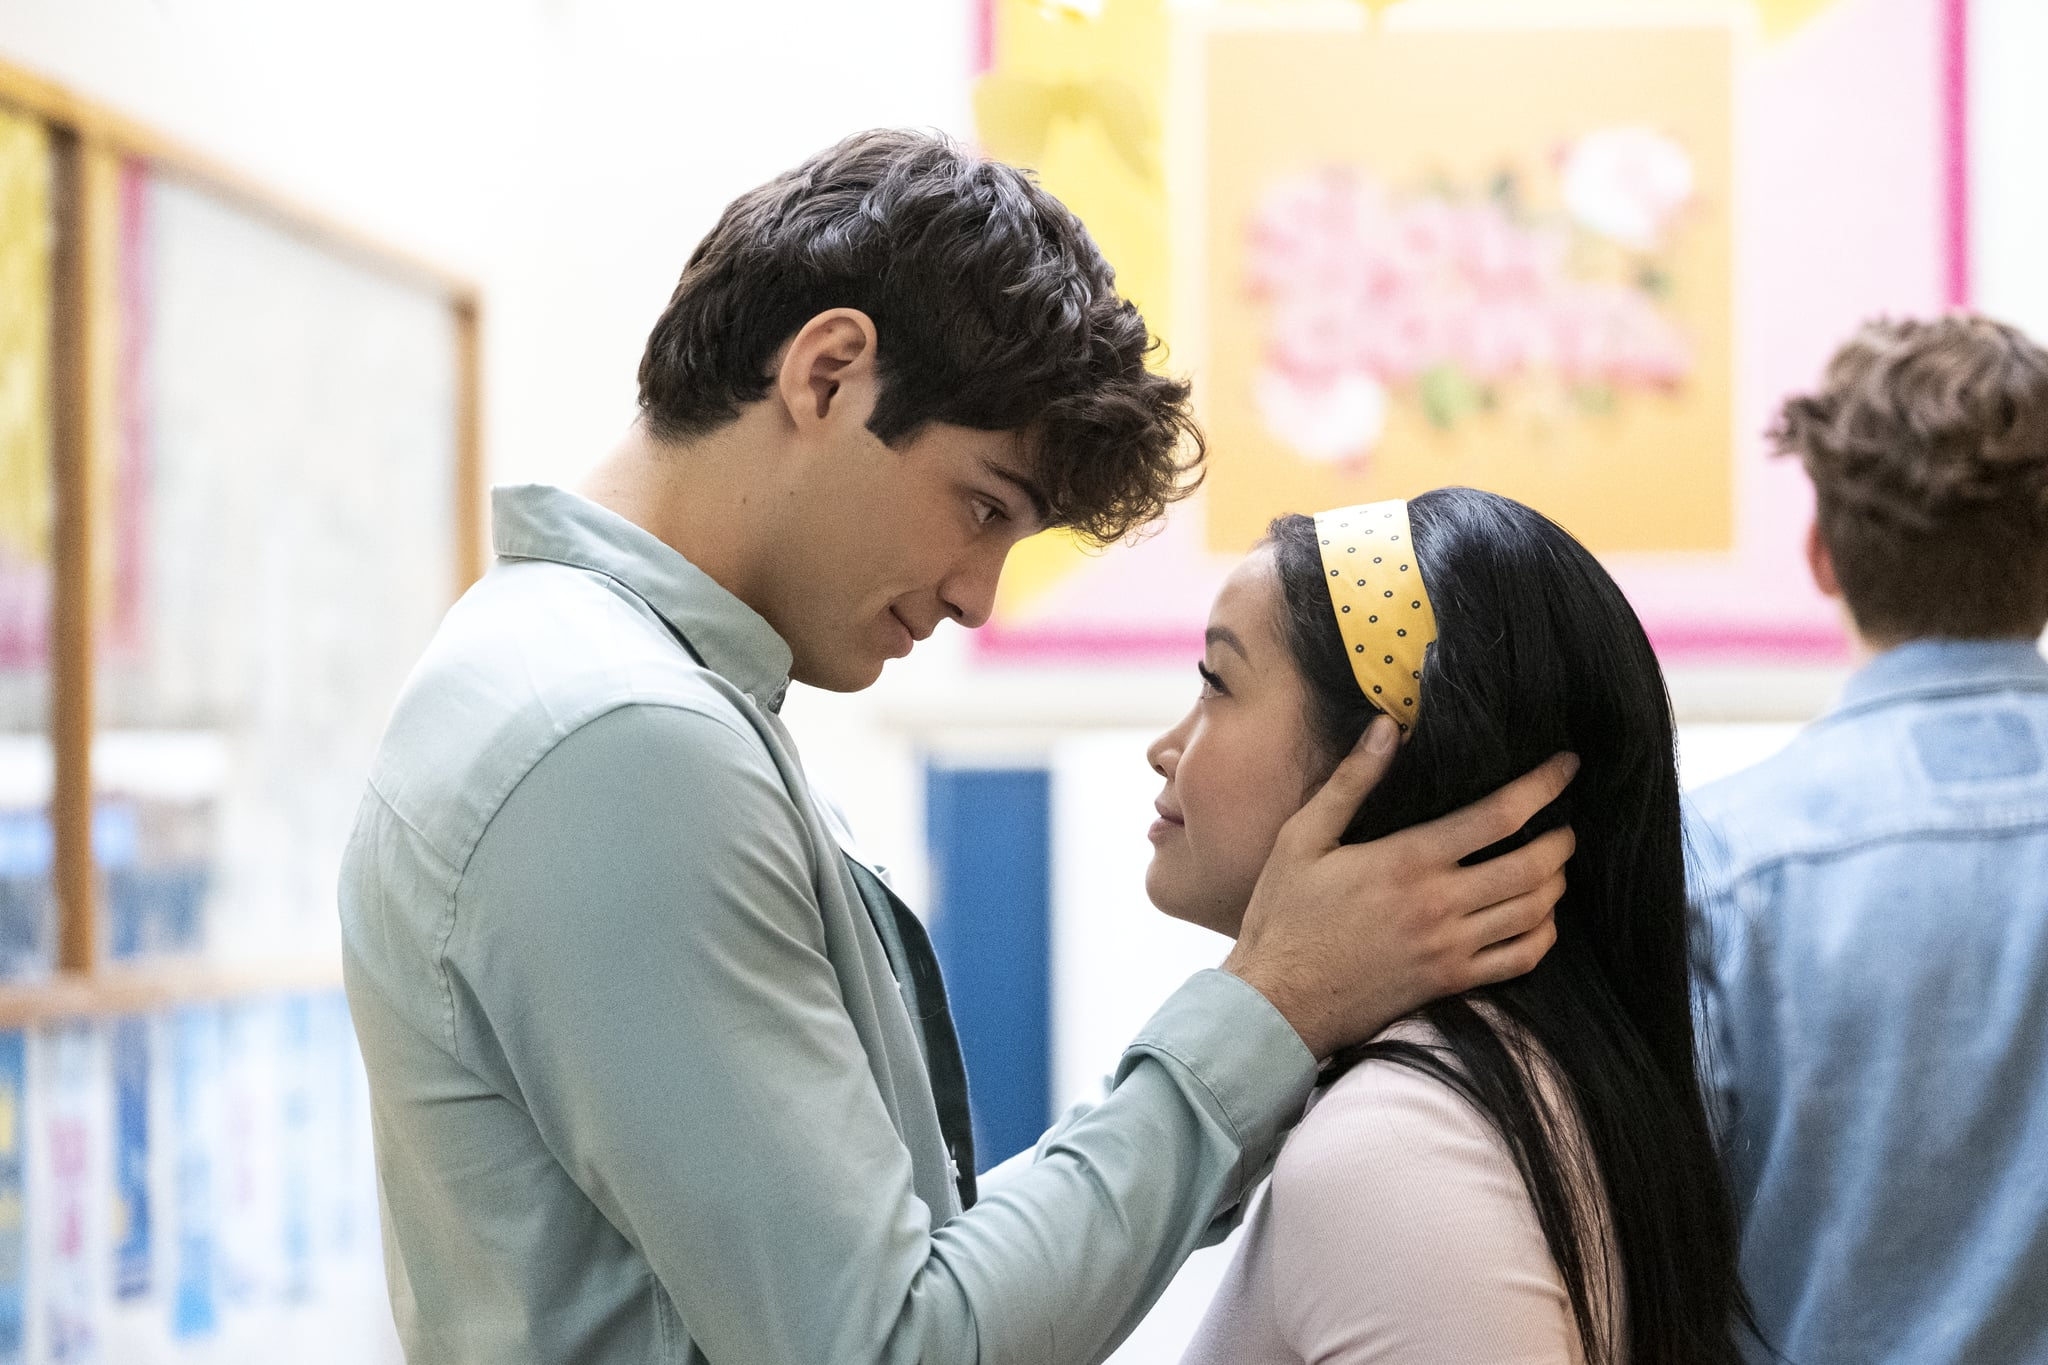 Peter and Lara Jean's Sex Talk Scene in P.S. I Still Love You Brings Up Important Issues About Boundaries